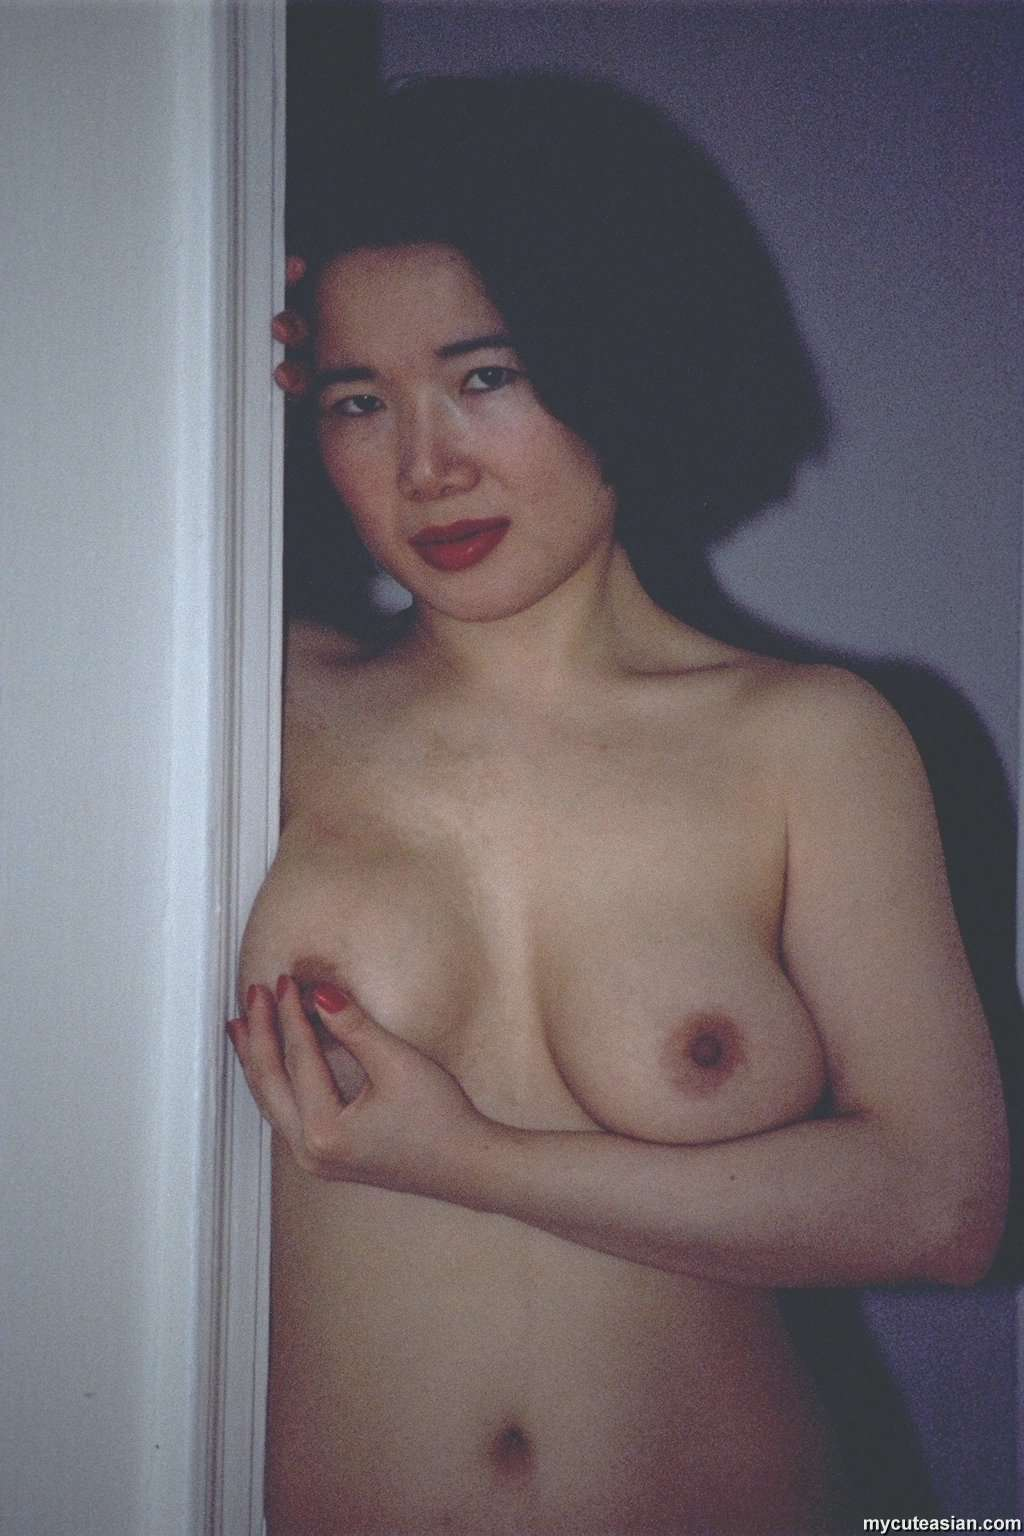 Hot asian wife nude pics, Sex videos with girls